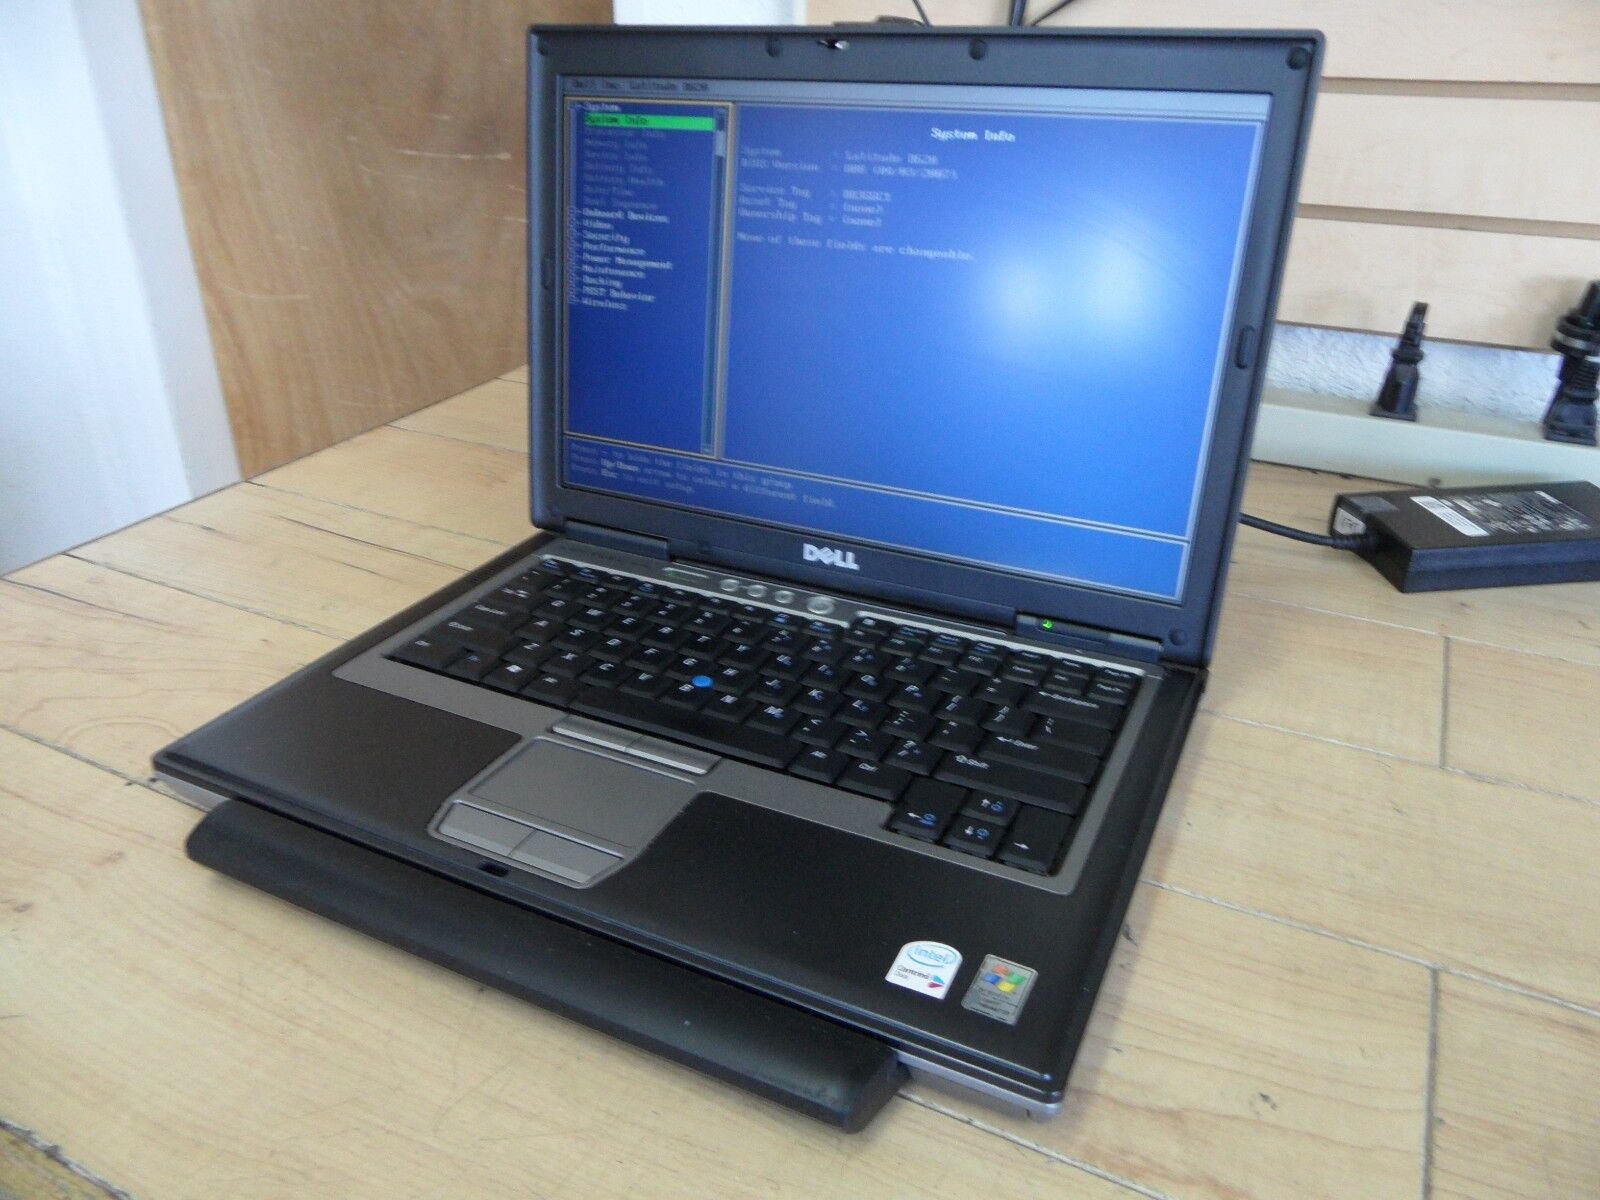 Dell Latitude D620 Laptop For Parts Posted Bios 160GB Hard Drive Wiped *